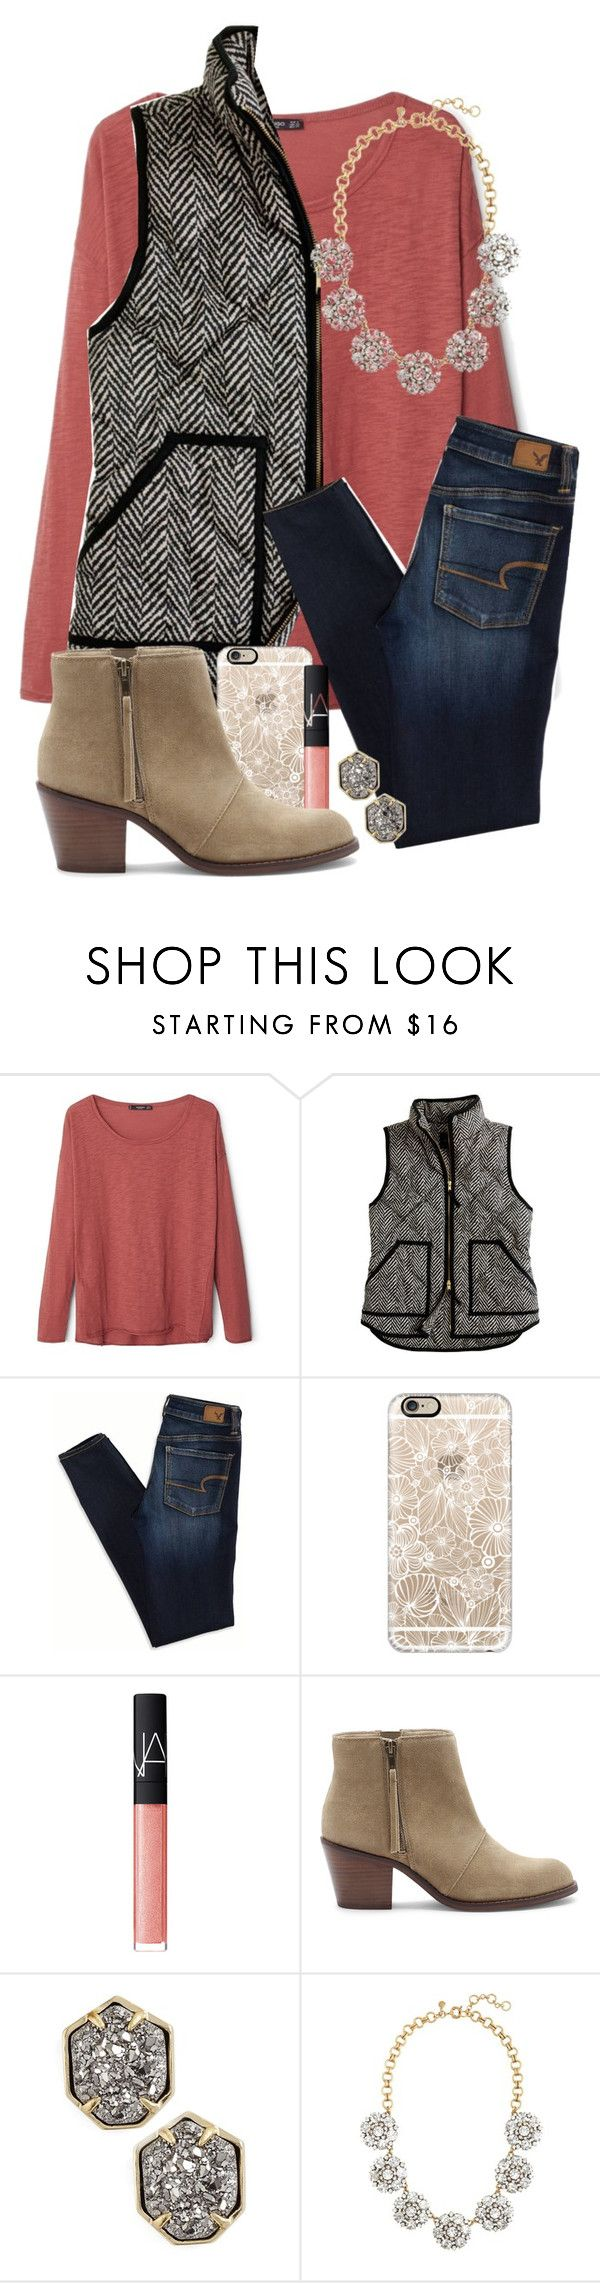 """Want this vest"" by hgw8503 ❤ liked on Polyvore featuring MANGO, J.Crew, American Eagle Outfitters, Casetify, NARS Cosmetics, Sole Society, Kendra Scott, women's clothing, women and female"